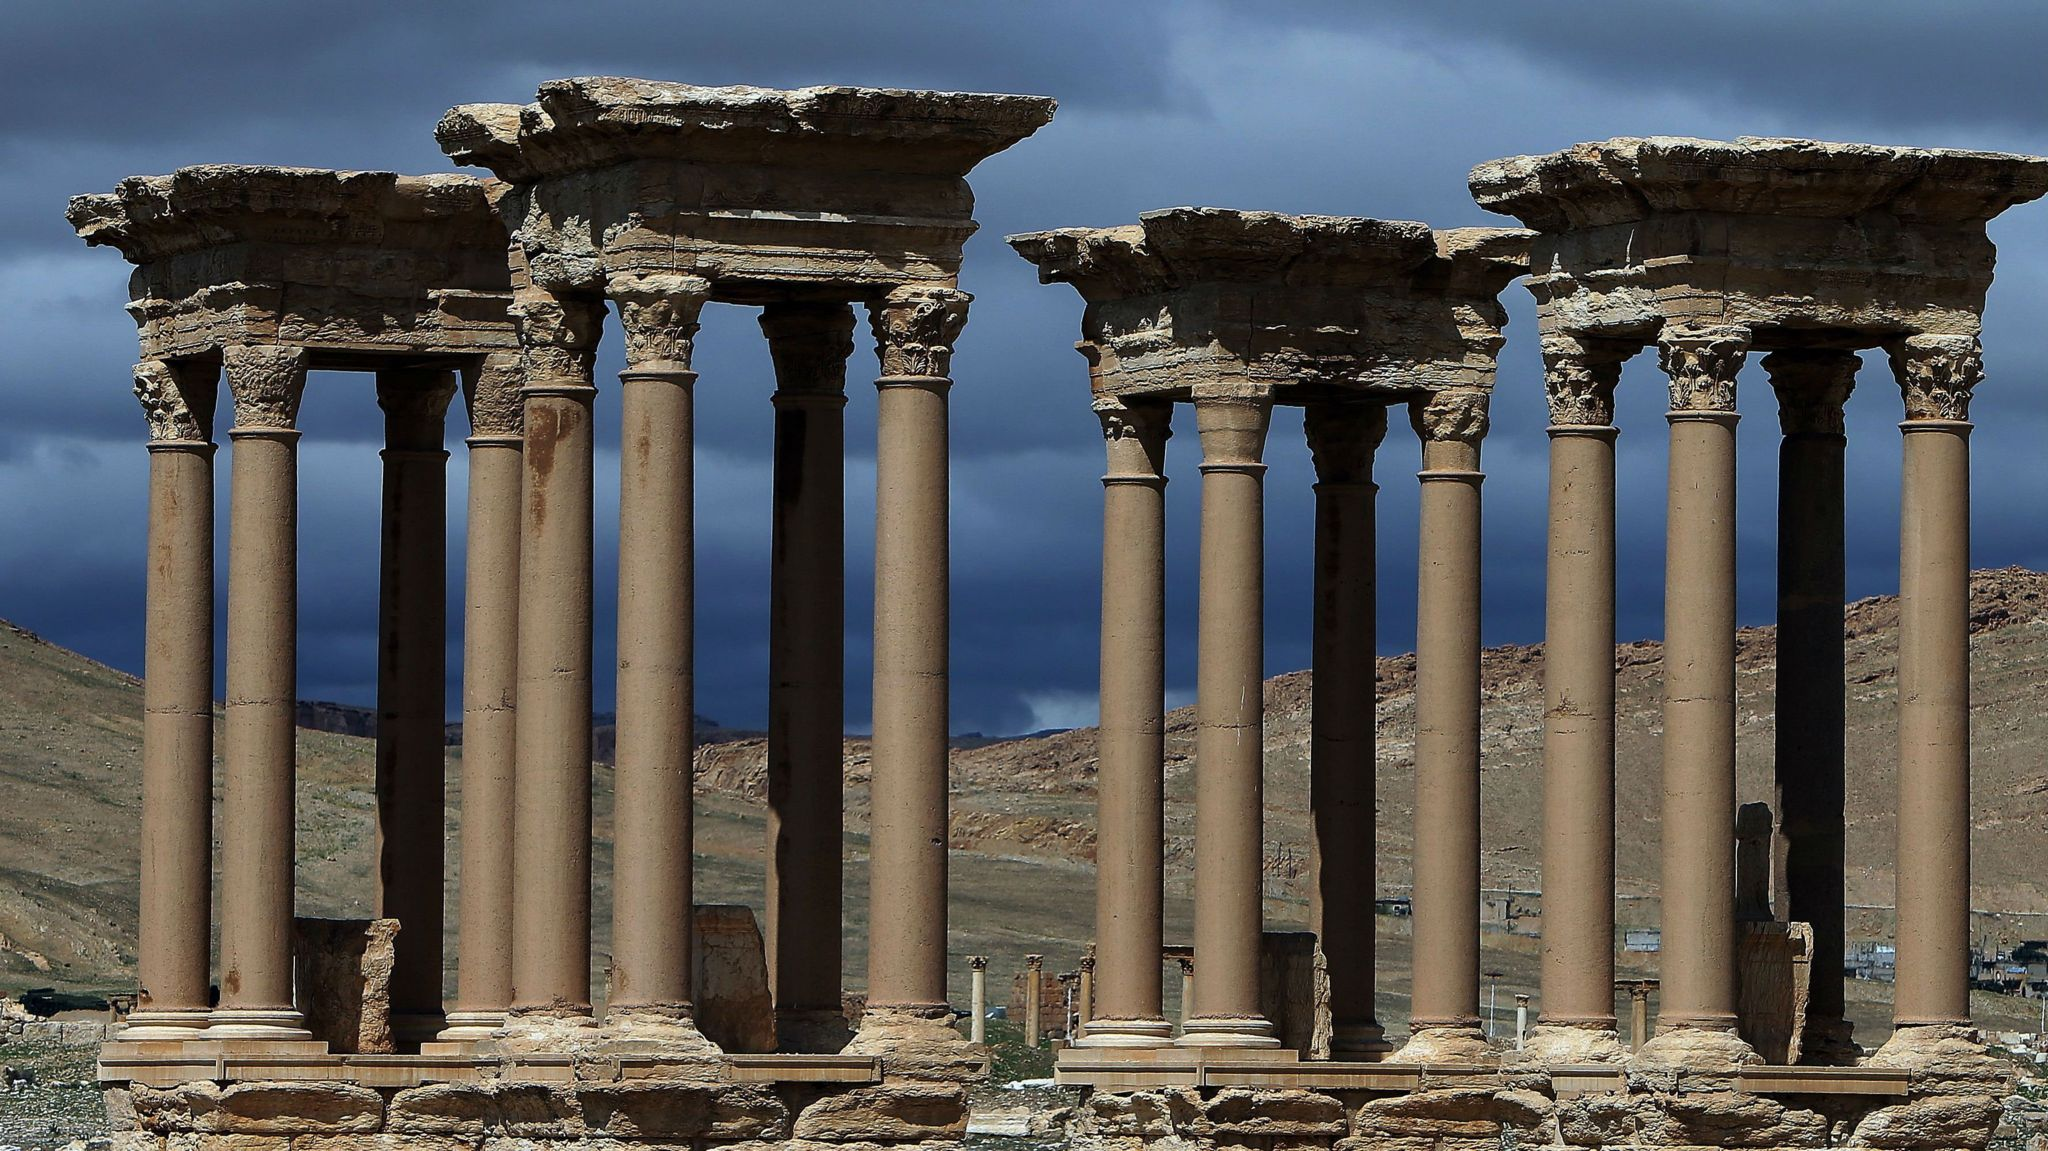 The Tetrapylon at Palmyra before IS occupation